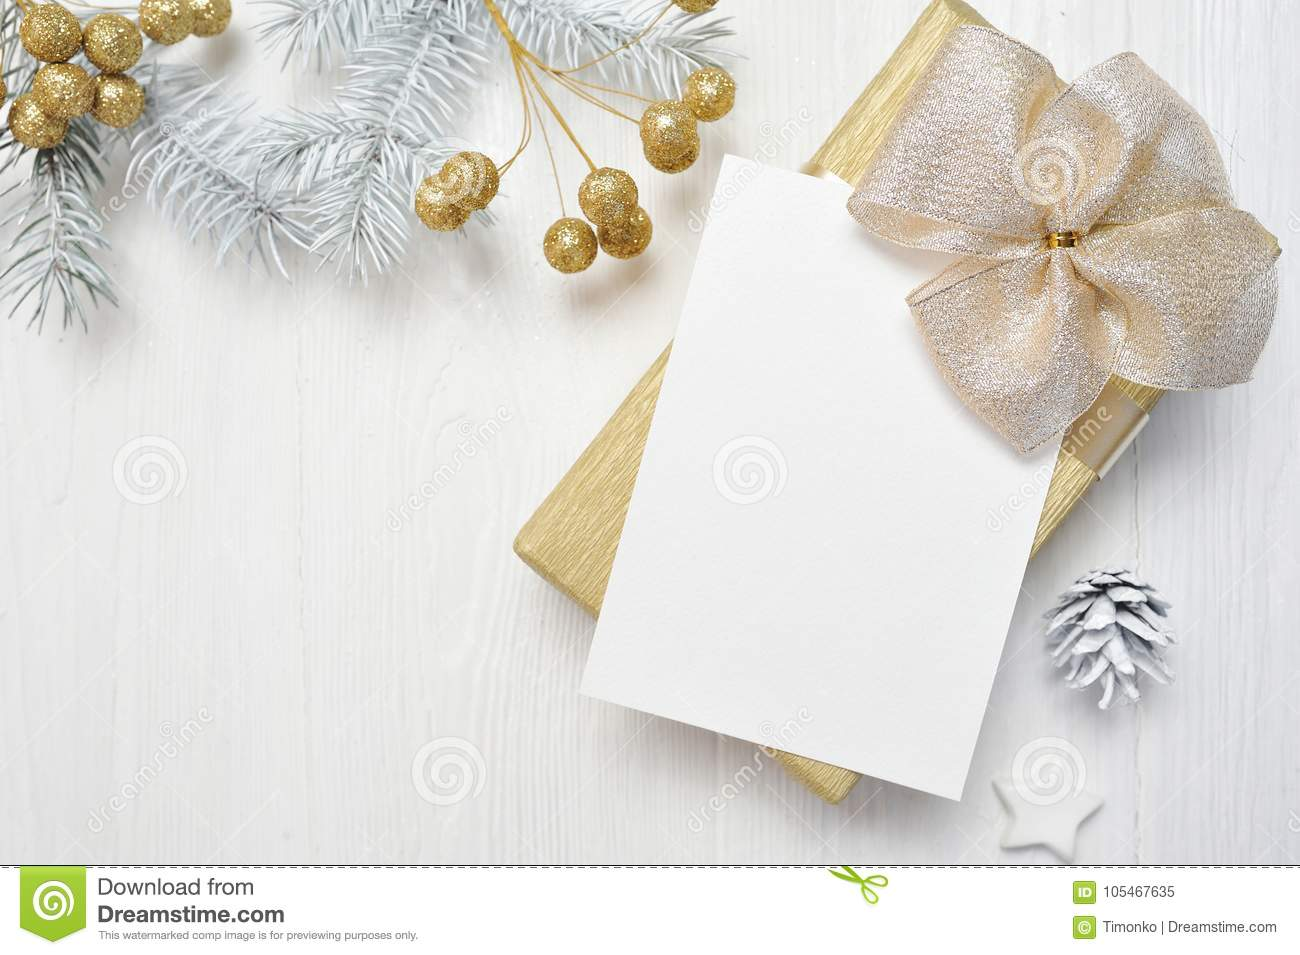 Mockup Christmas gift gold bow and tree cone, flatlay on a white wooden background, with place for your text